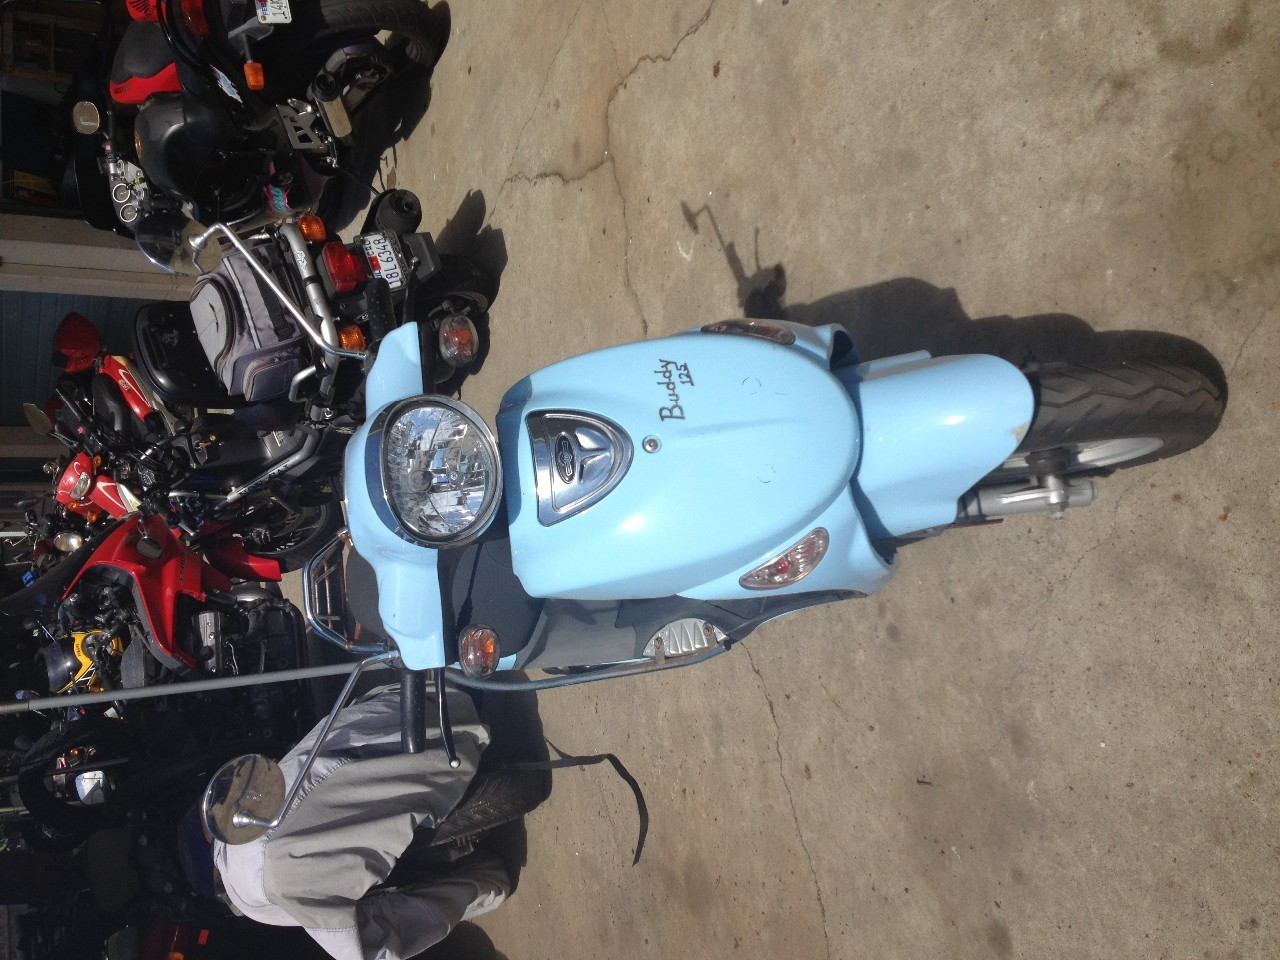 2009 Genuine Scooter Company Buddy 125, motorcycle listing